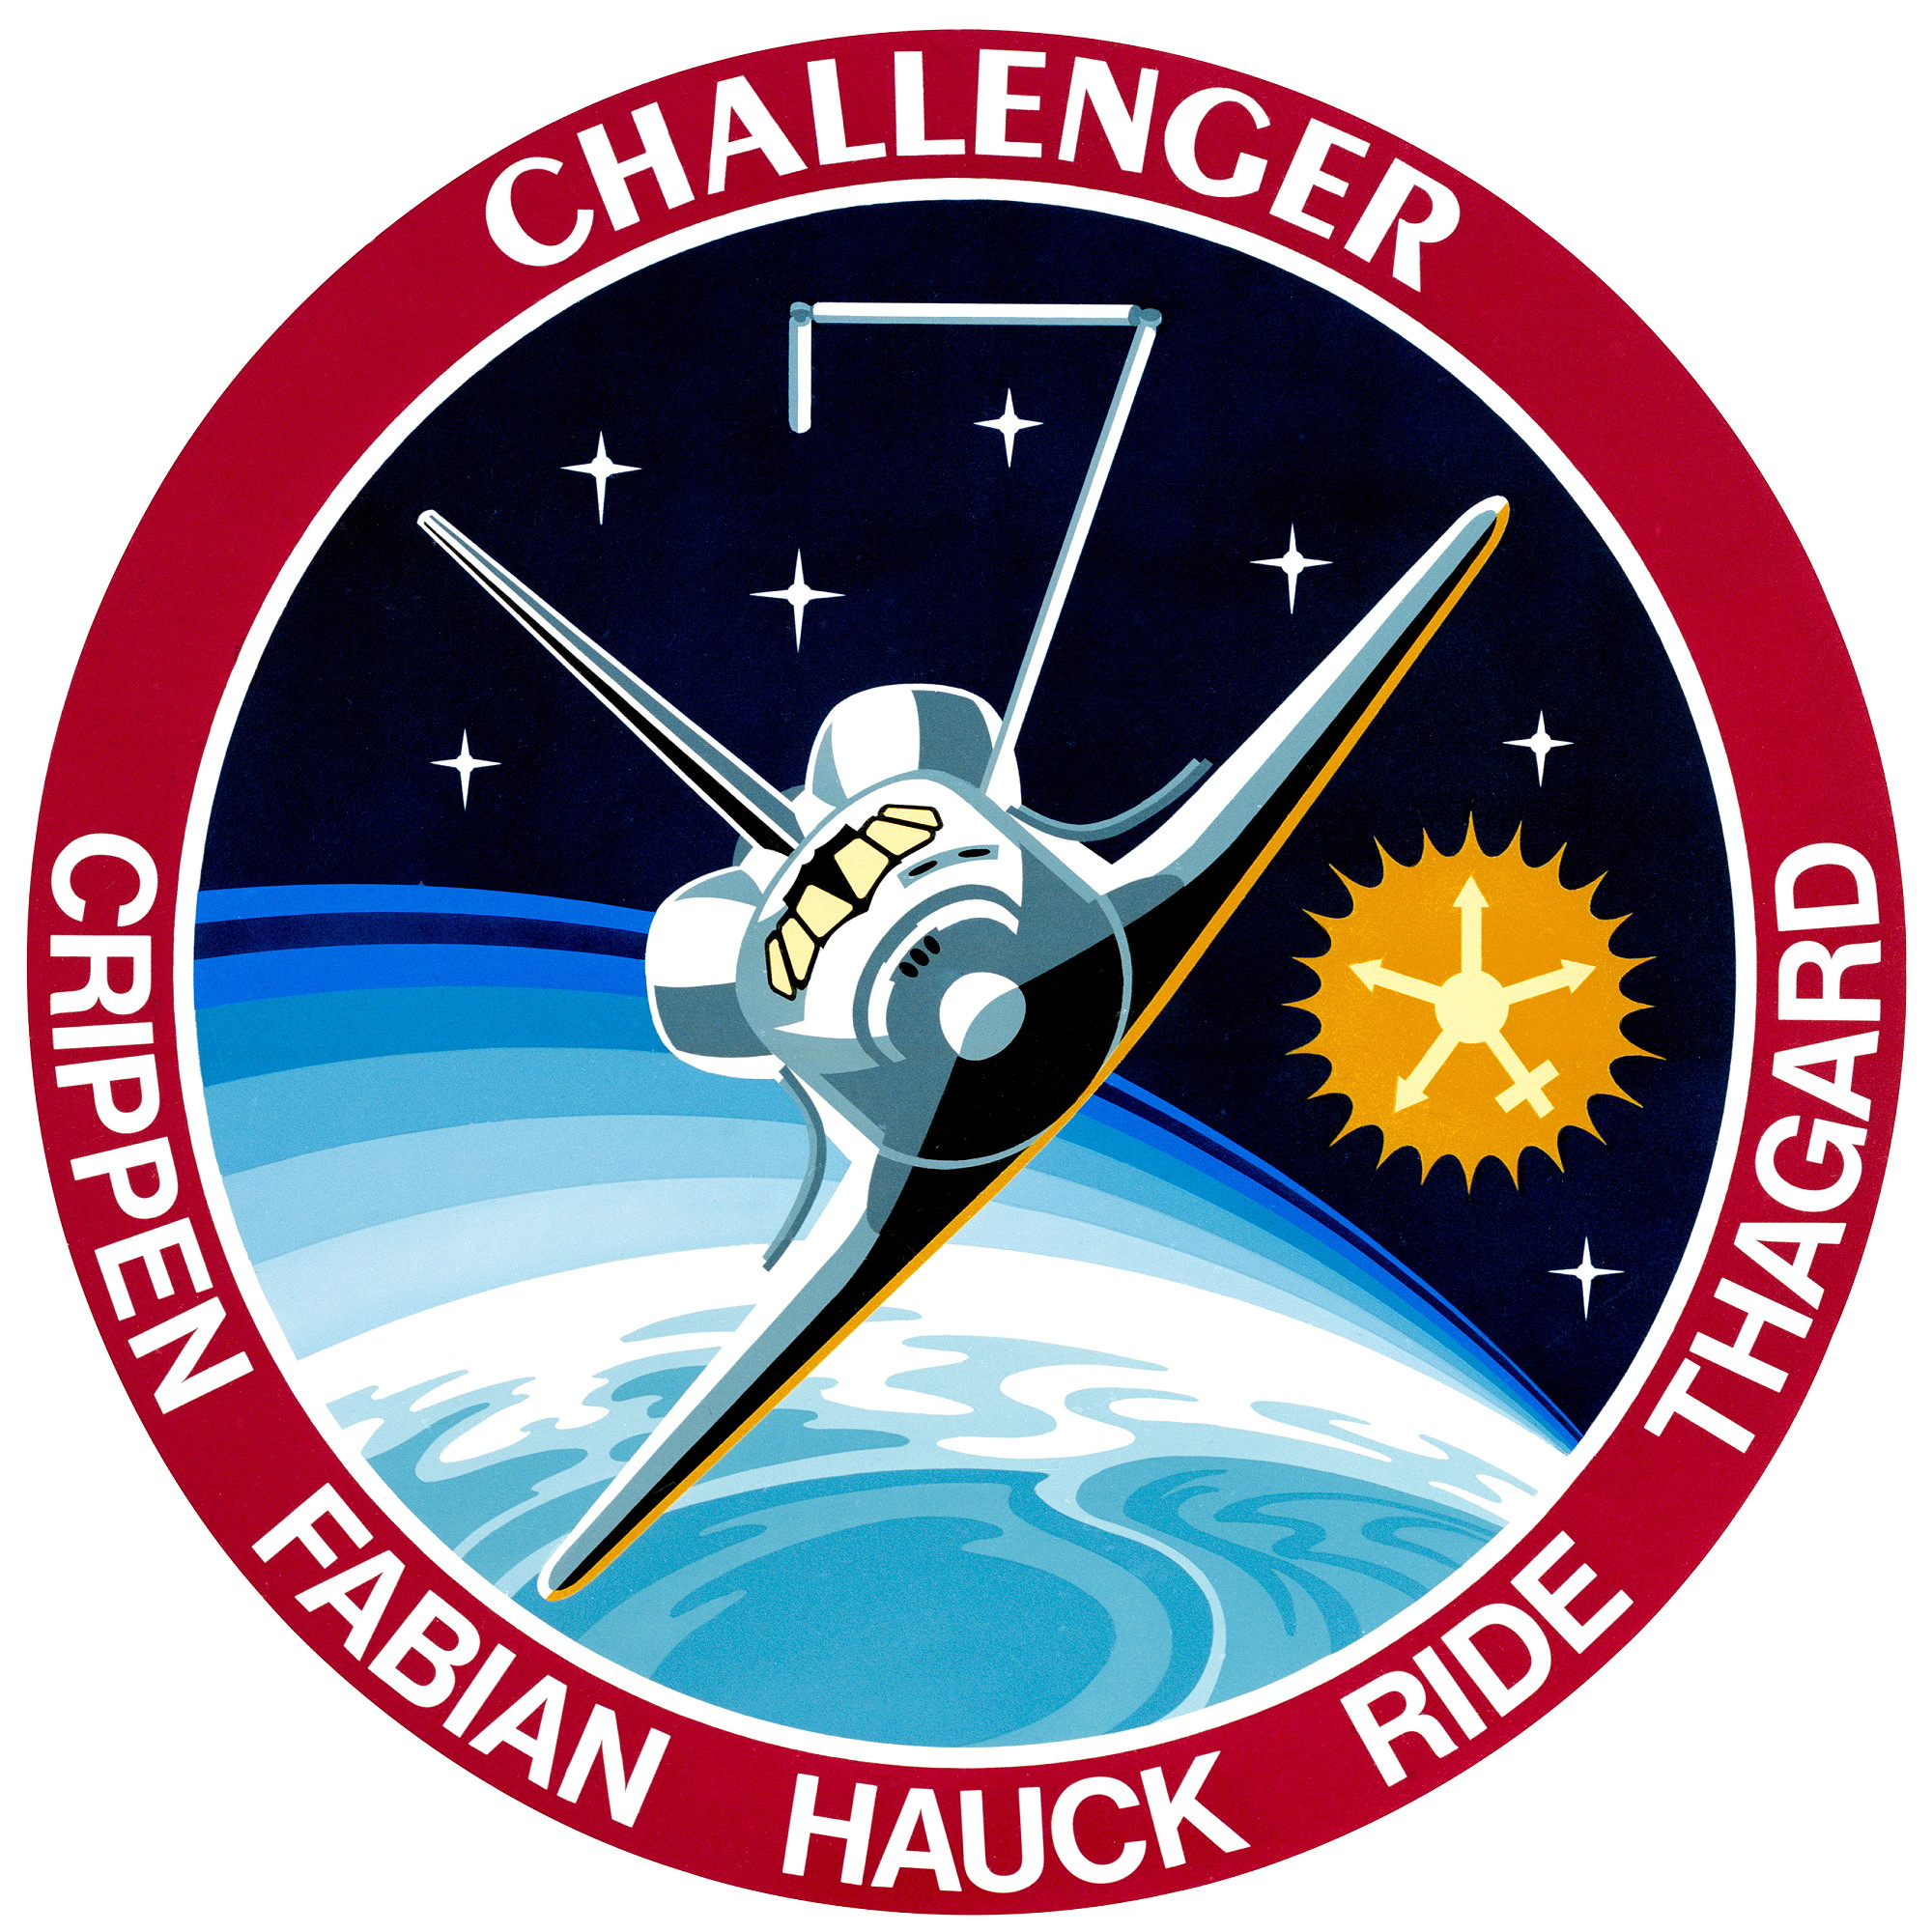 image about Printable Nasa Logo called Spaceflight mission article: STS-7